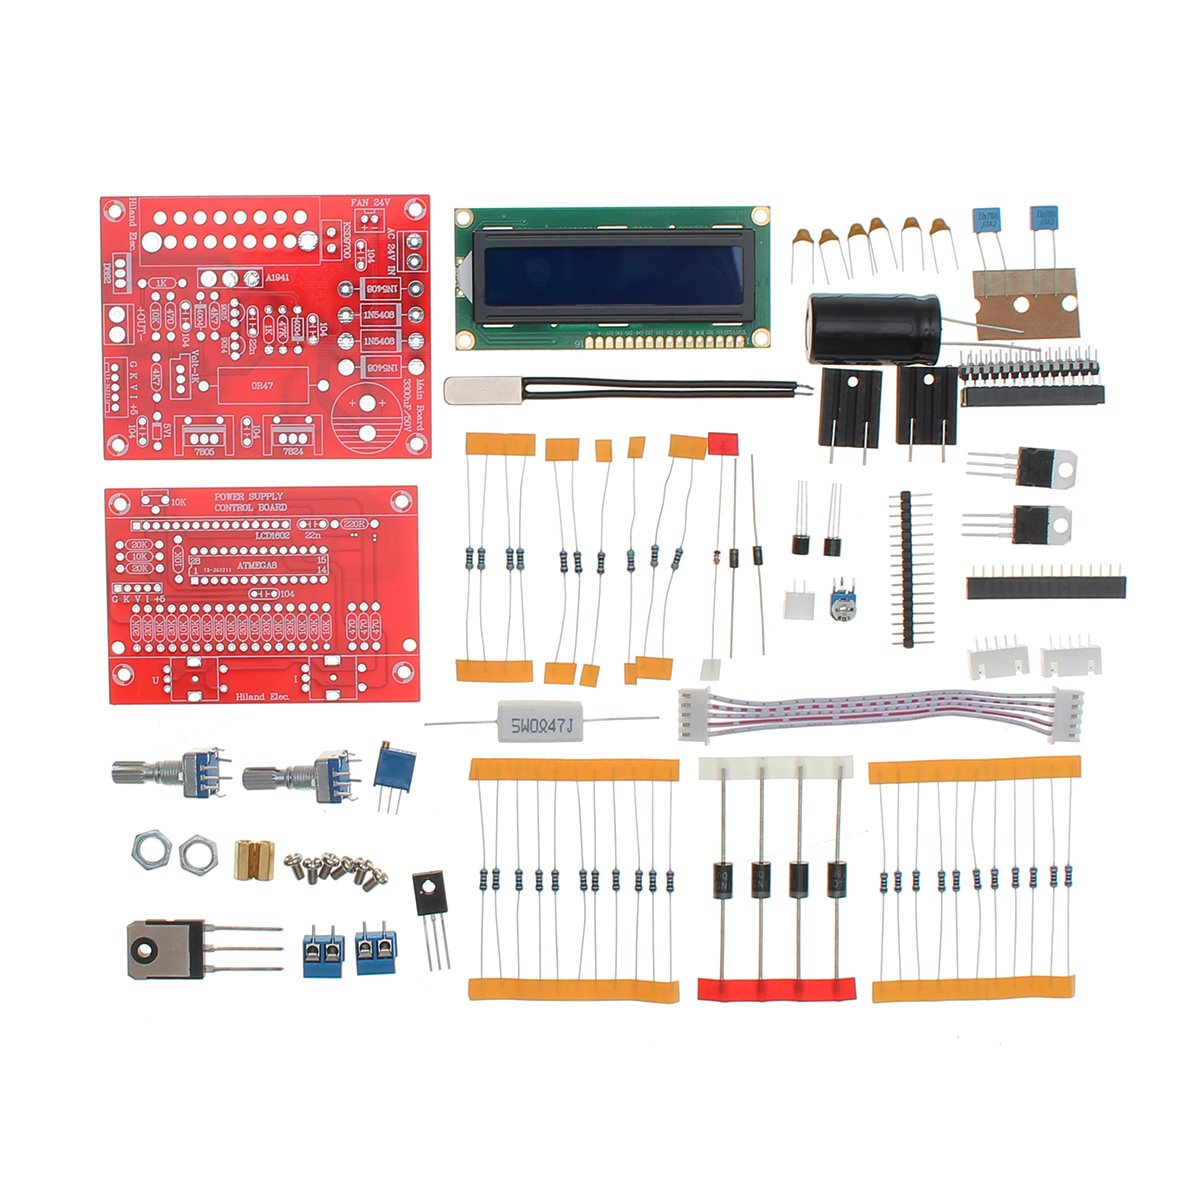 0 28v 001 2a Adjustable Regulated Power Kit Dc Direct Current And Pulsed Circuit Fault Limiter 2017 Hot Orignal Hiland Supply Diy